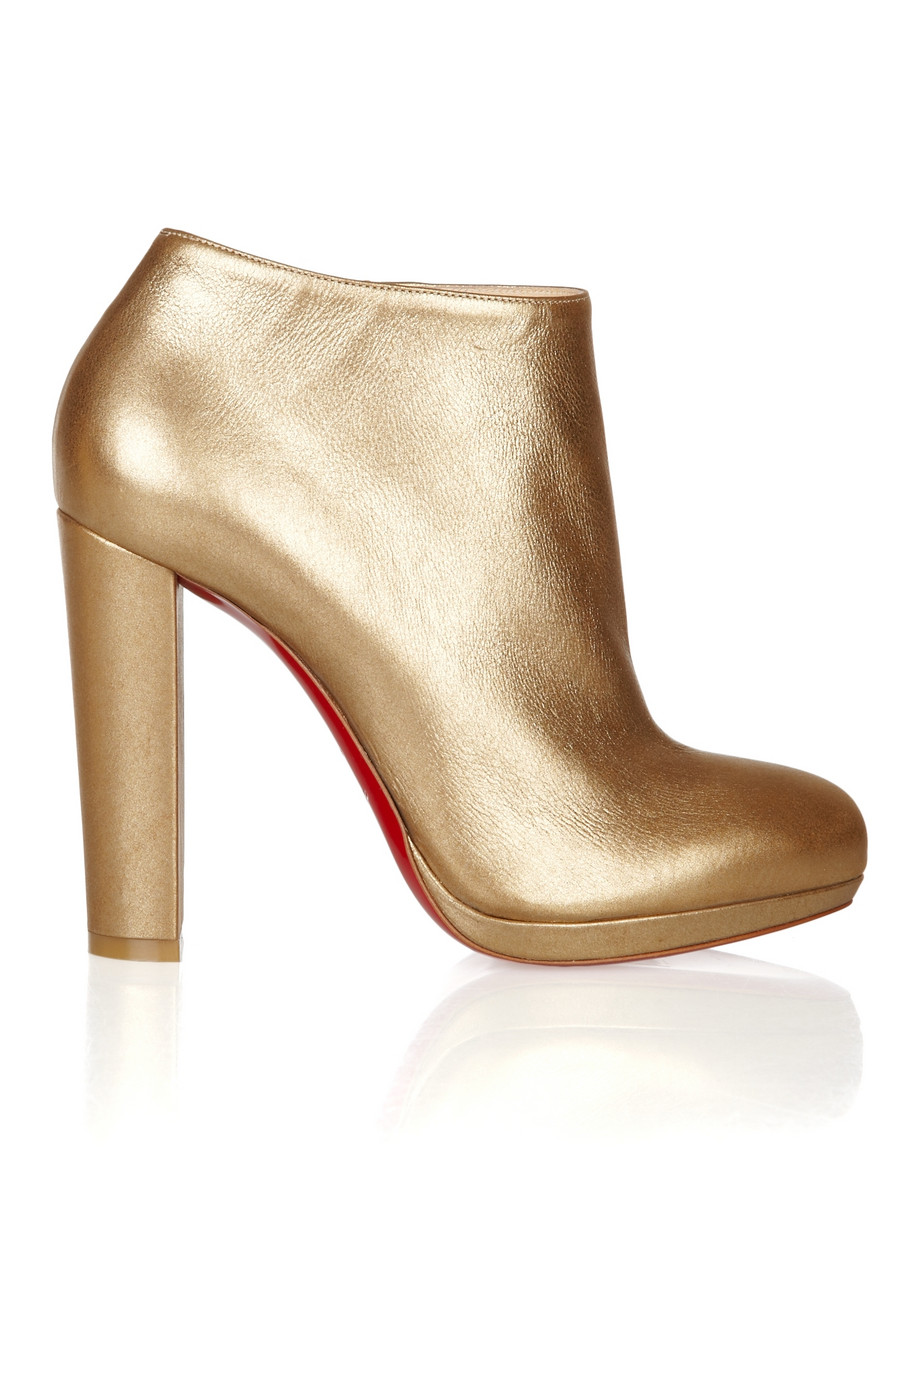 Christian Louboutin Rock and Gold Bootie $547.50 marked down from $1095